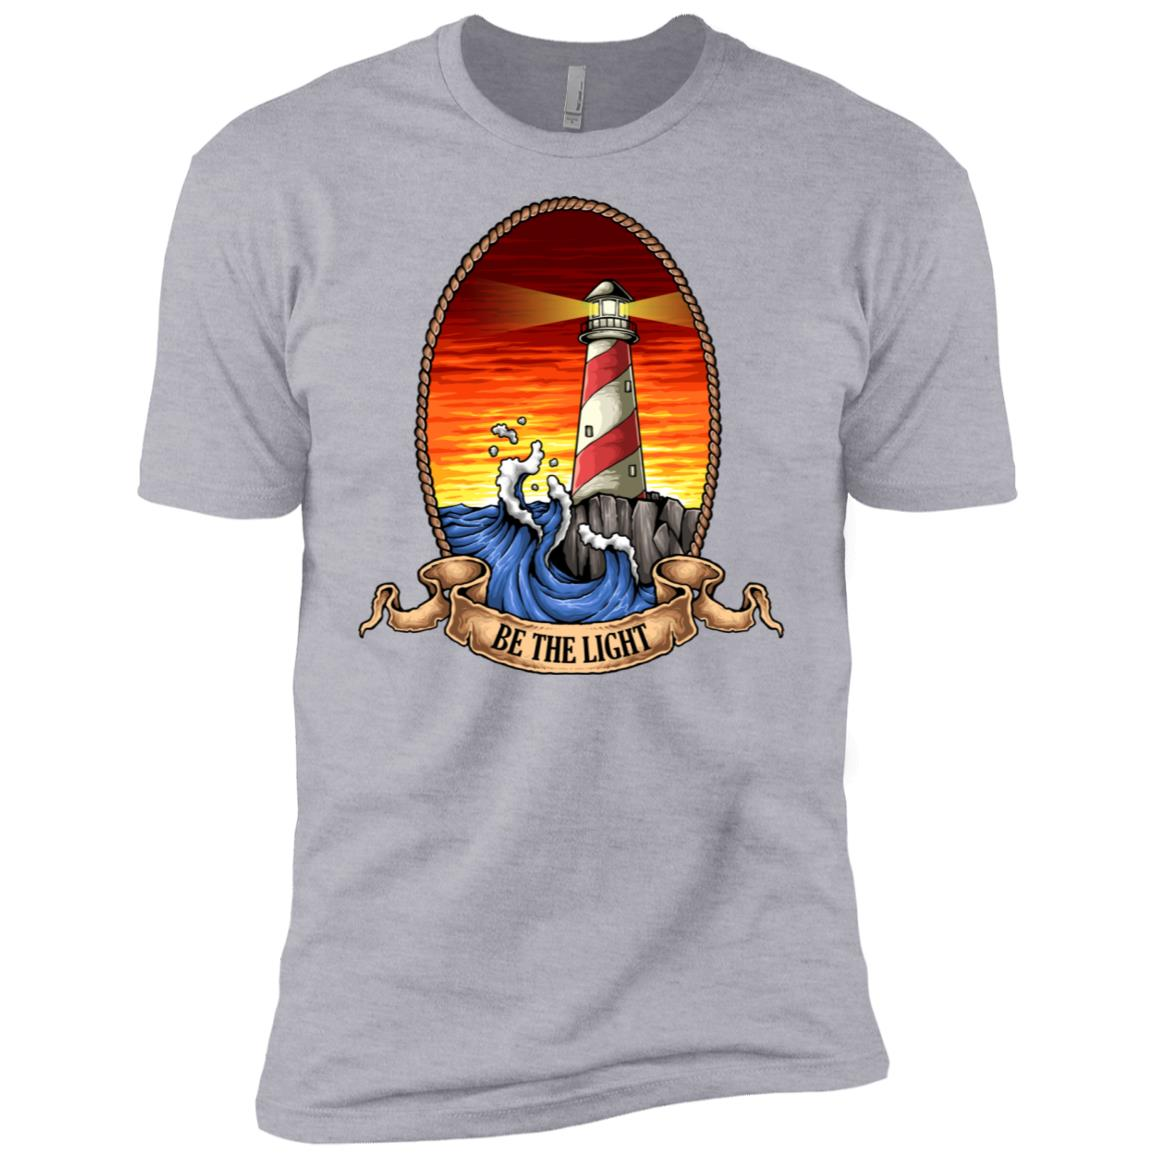 Be The Light of Hope Lighthouse Help Others See Men Short Sleeve